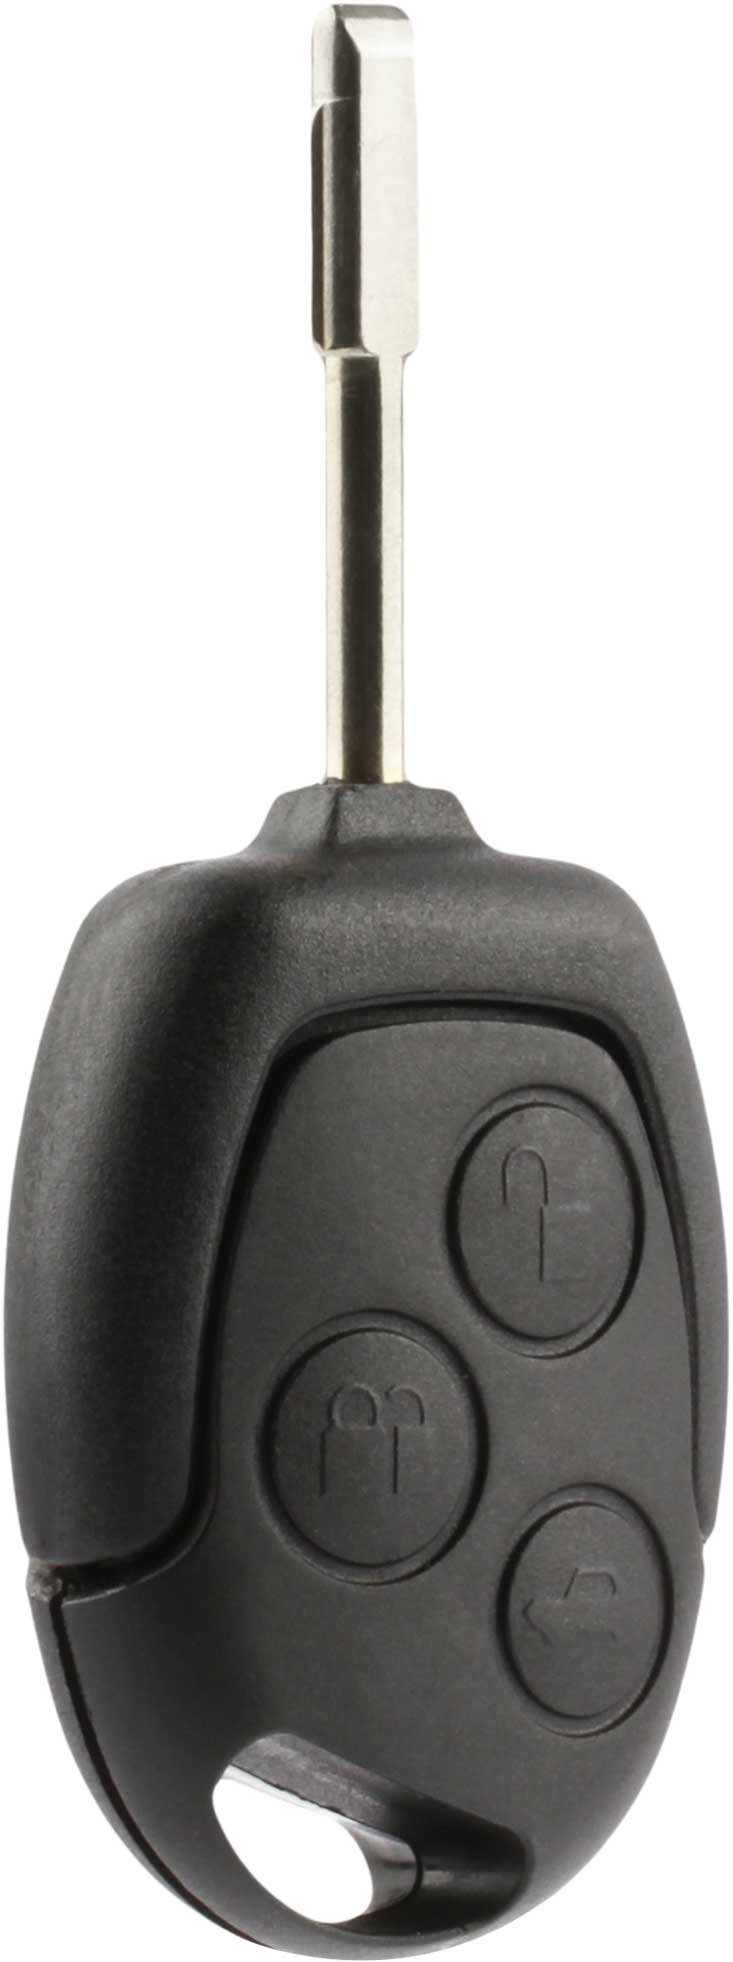 Key Fob Keyless Entry Remote fits 2010 2011 2012 2013 Ford Transit Connect (KR55WK47899, 267T-5WK47899) by USARemote